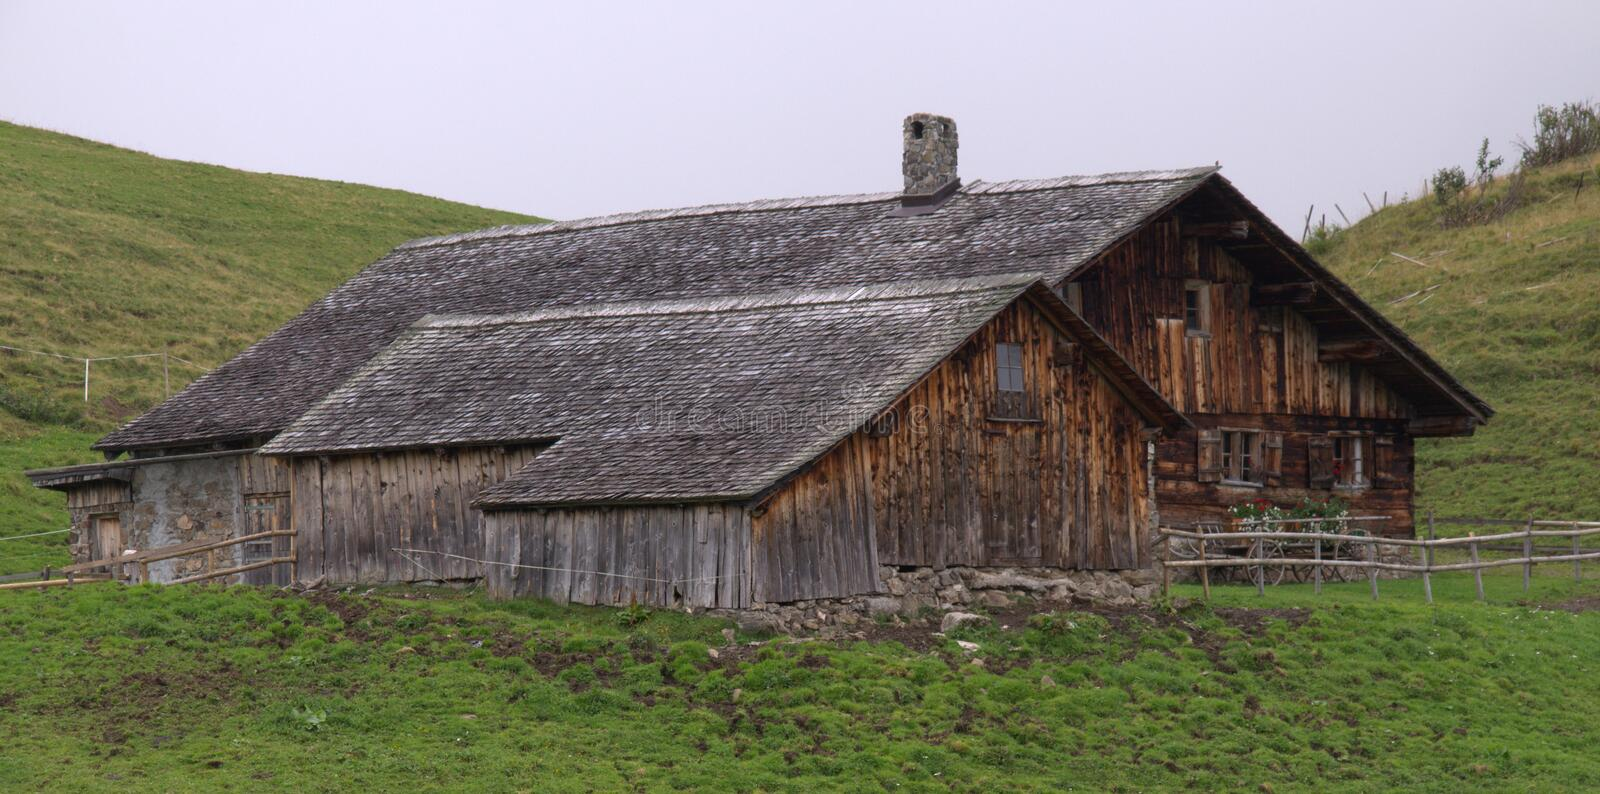 Wooden houses in the Alps. Rural wooden houses in the Alps royalty free stock photo